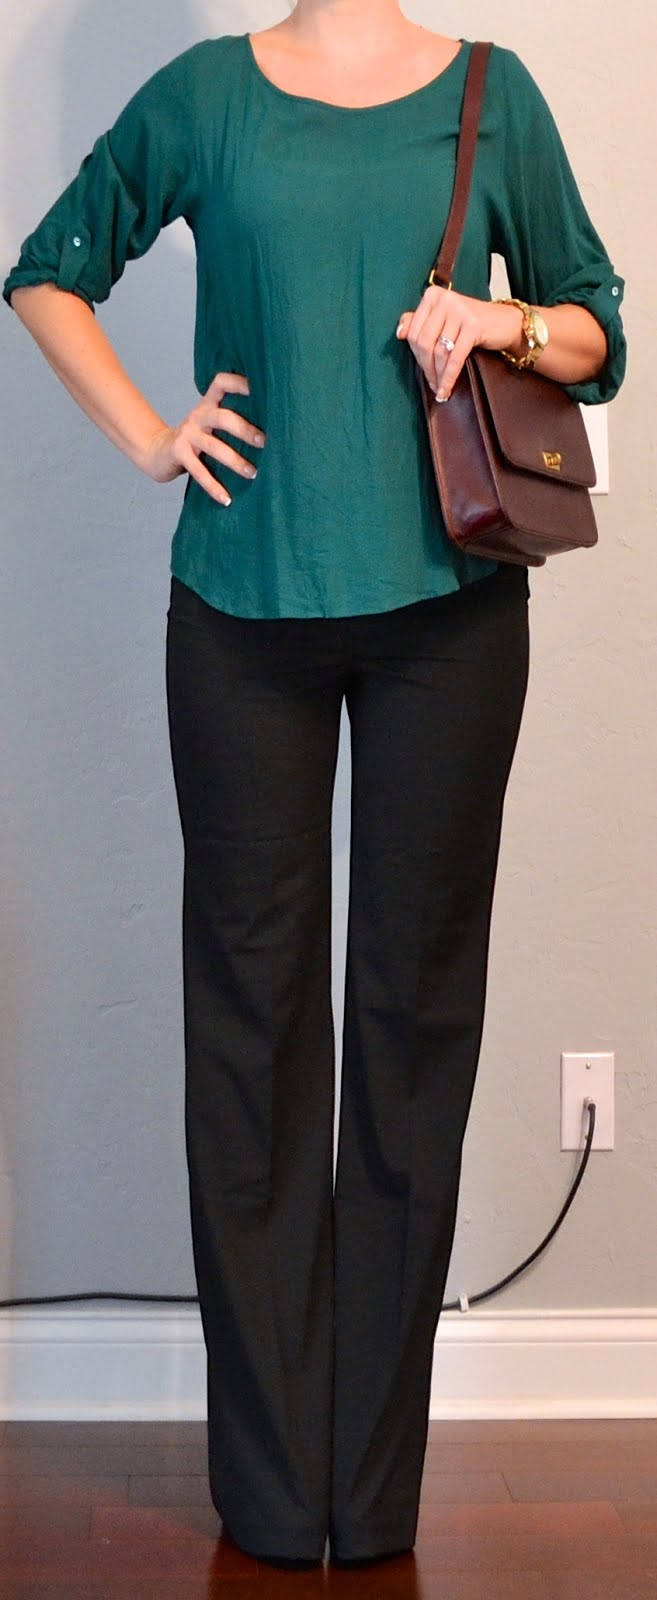 Outfit Post Green Blouse Black Pants Burgundy Purse